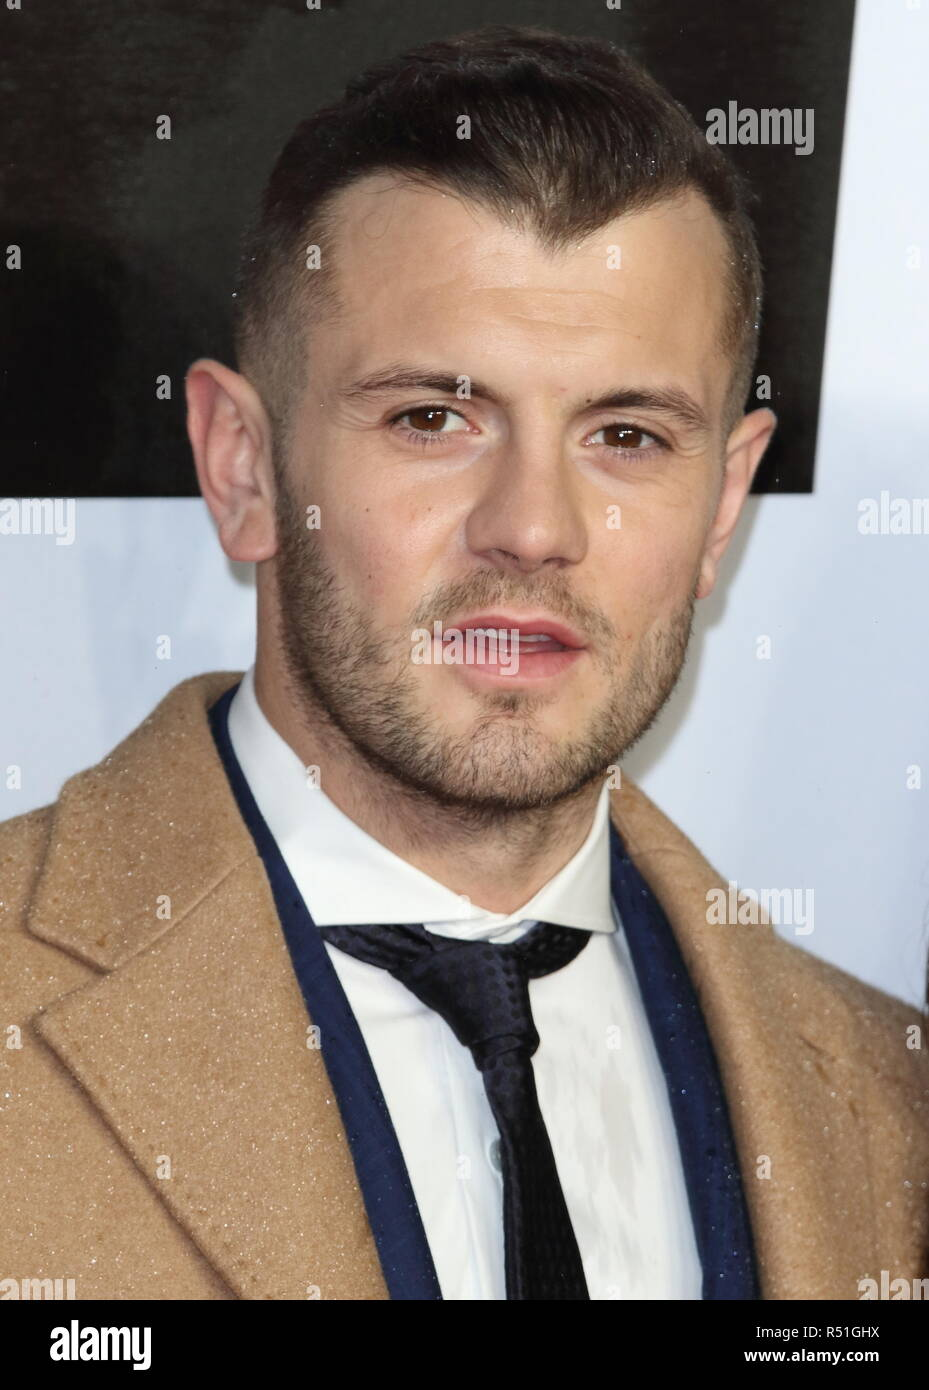 Jack Wilshere at the Creed 2 UK Premiere at the BFI Imax. - Stock Image